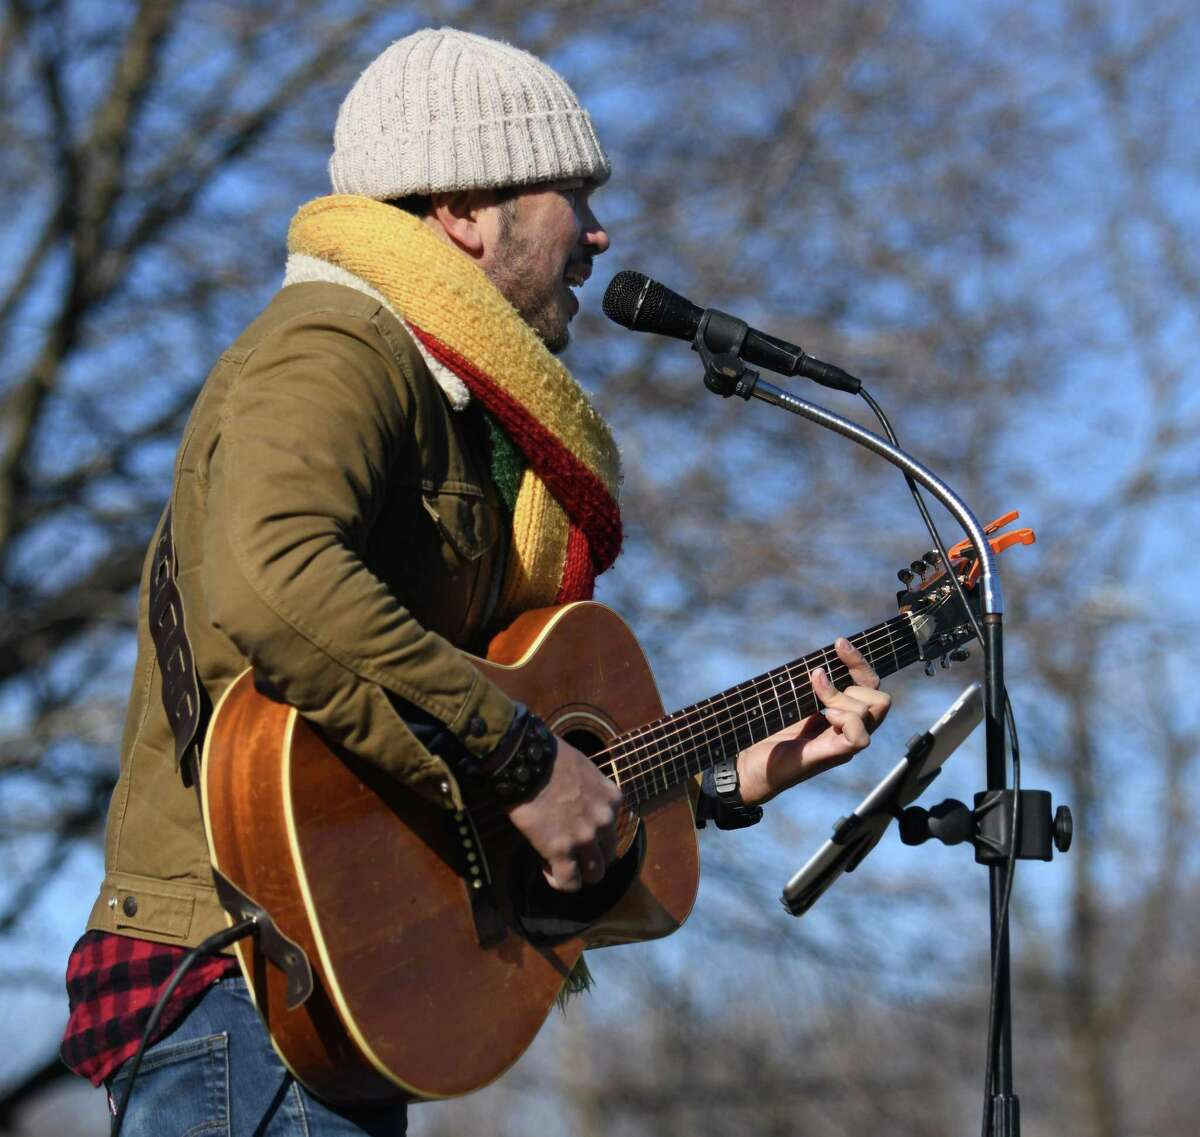 Rick Reyes performs at the debut of the Shakespeare Market on the grounds of the former American Festival Shakespeare Theater in Stratford, Conn. Sunday, Jan. 17, 2021. The twice-monthly outdoor market made its debut Sunday on the site of the former Shakespeare Theater, which was destroyed in a fire two years ago. The market featured 20 vendors - a mix of arts, clothing, food, and more - with another 70 that have asked to be included in the future.